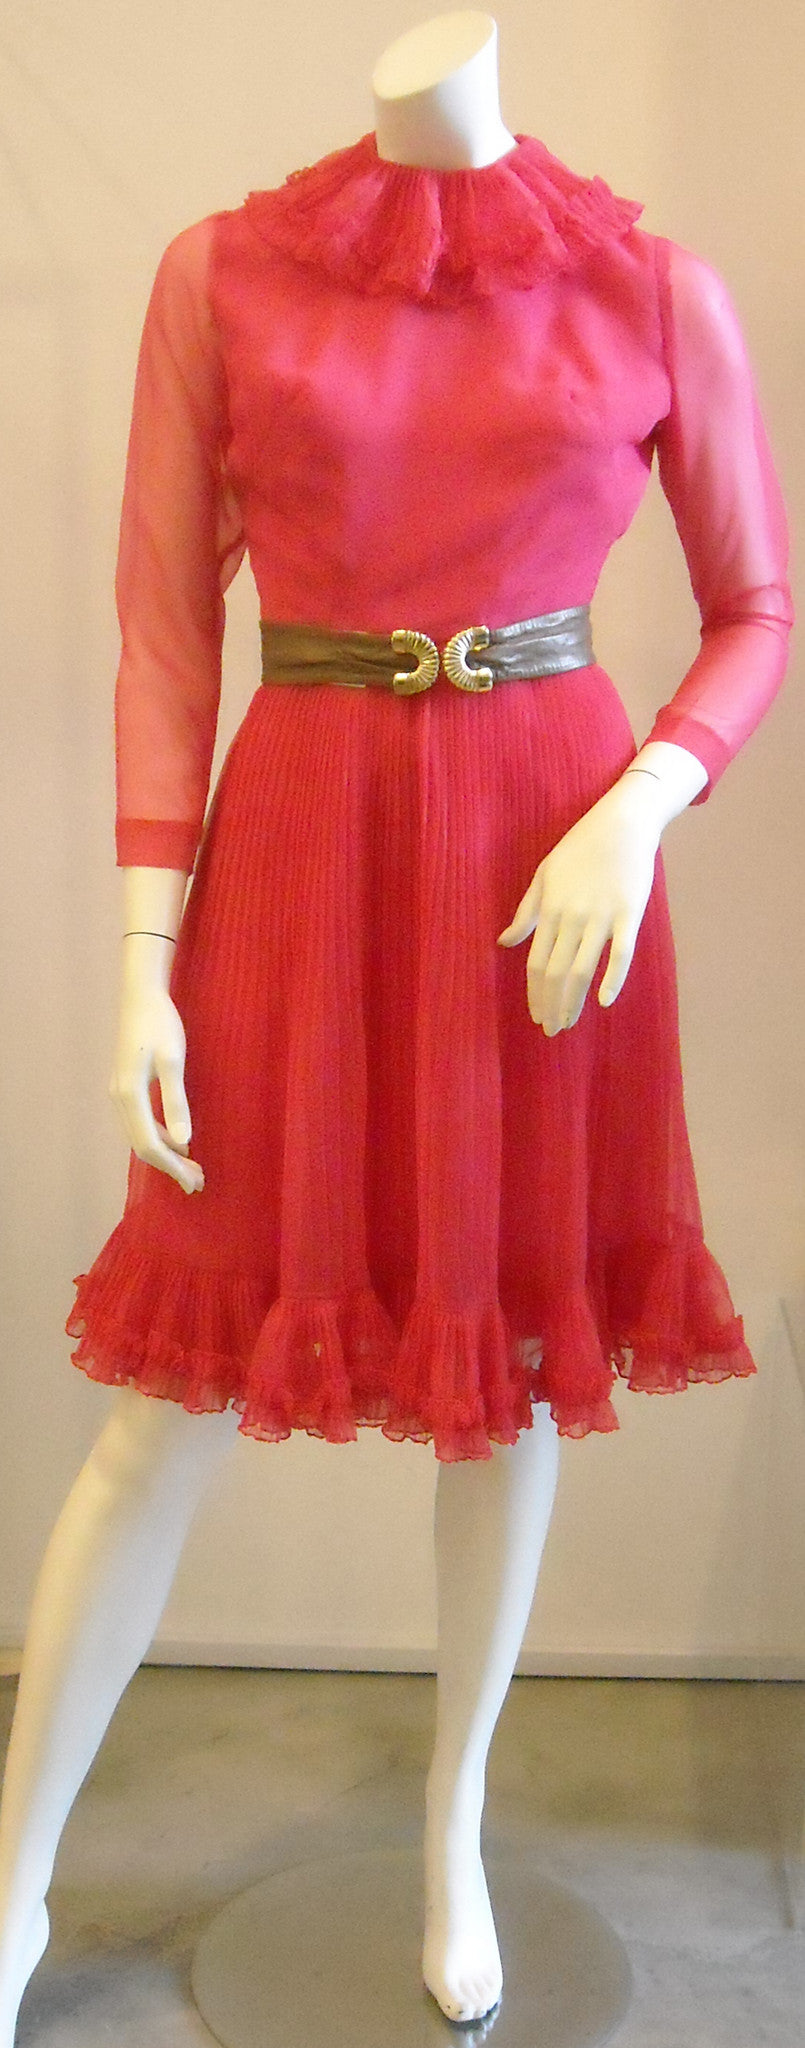 Frou Frou Fuschia Vintage Dress